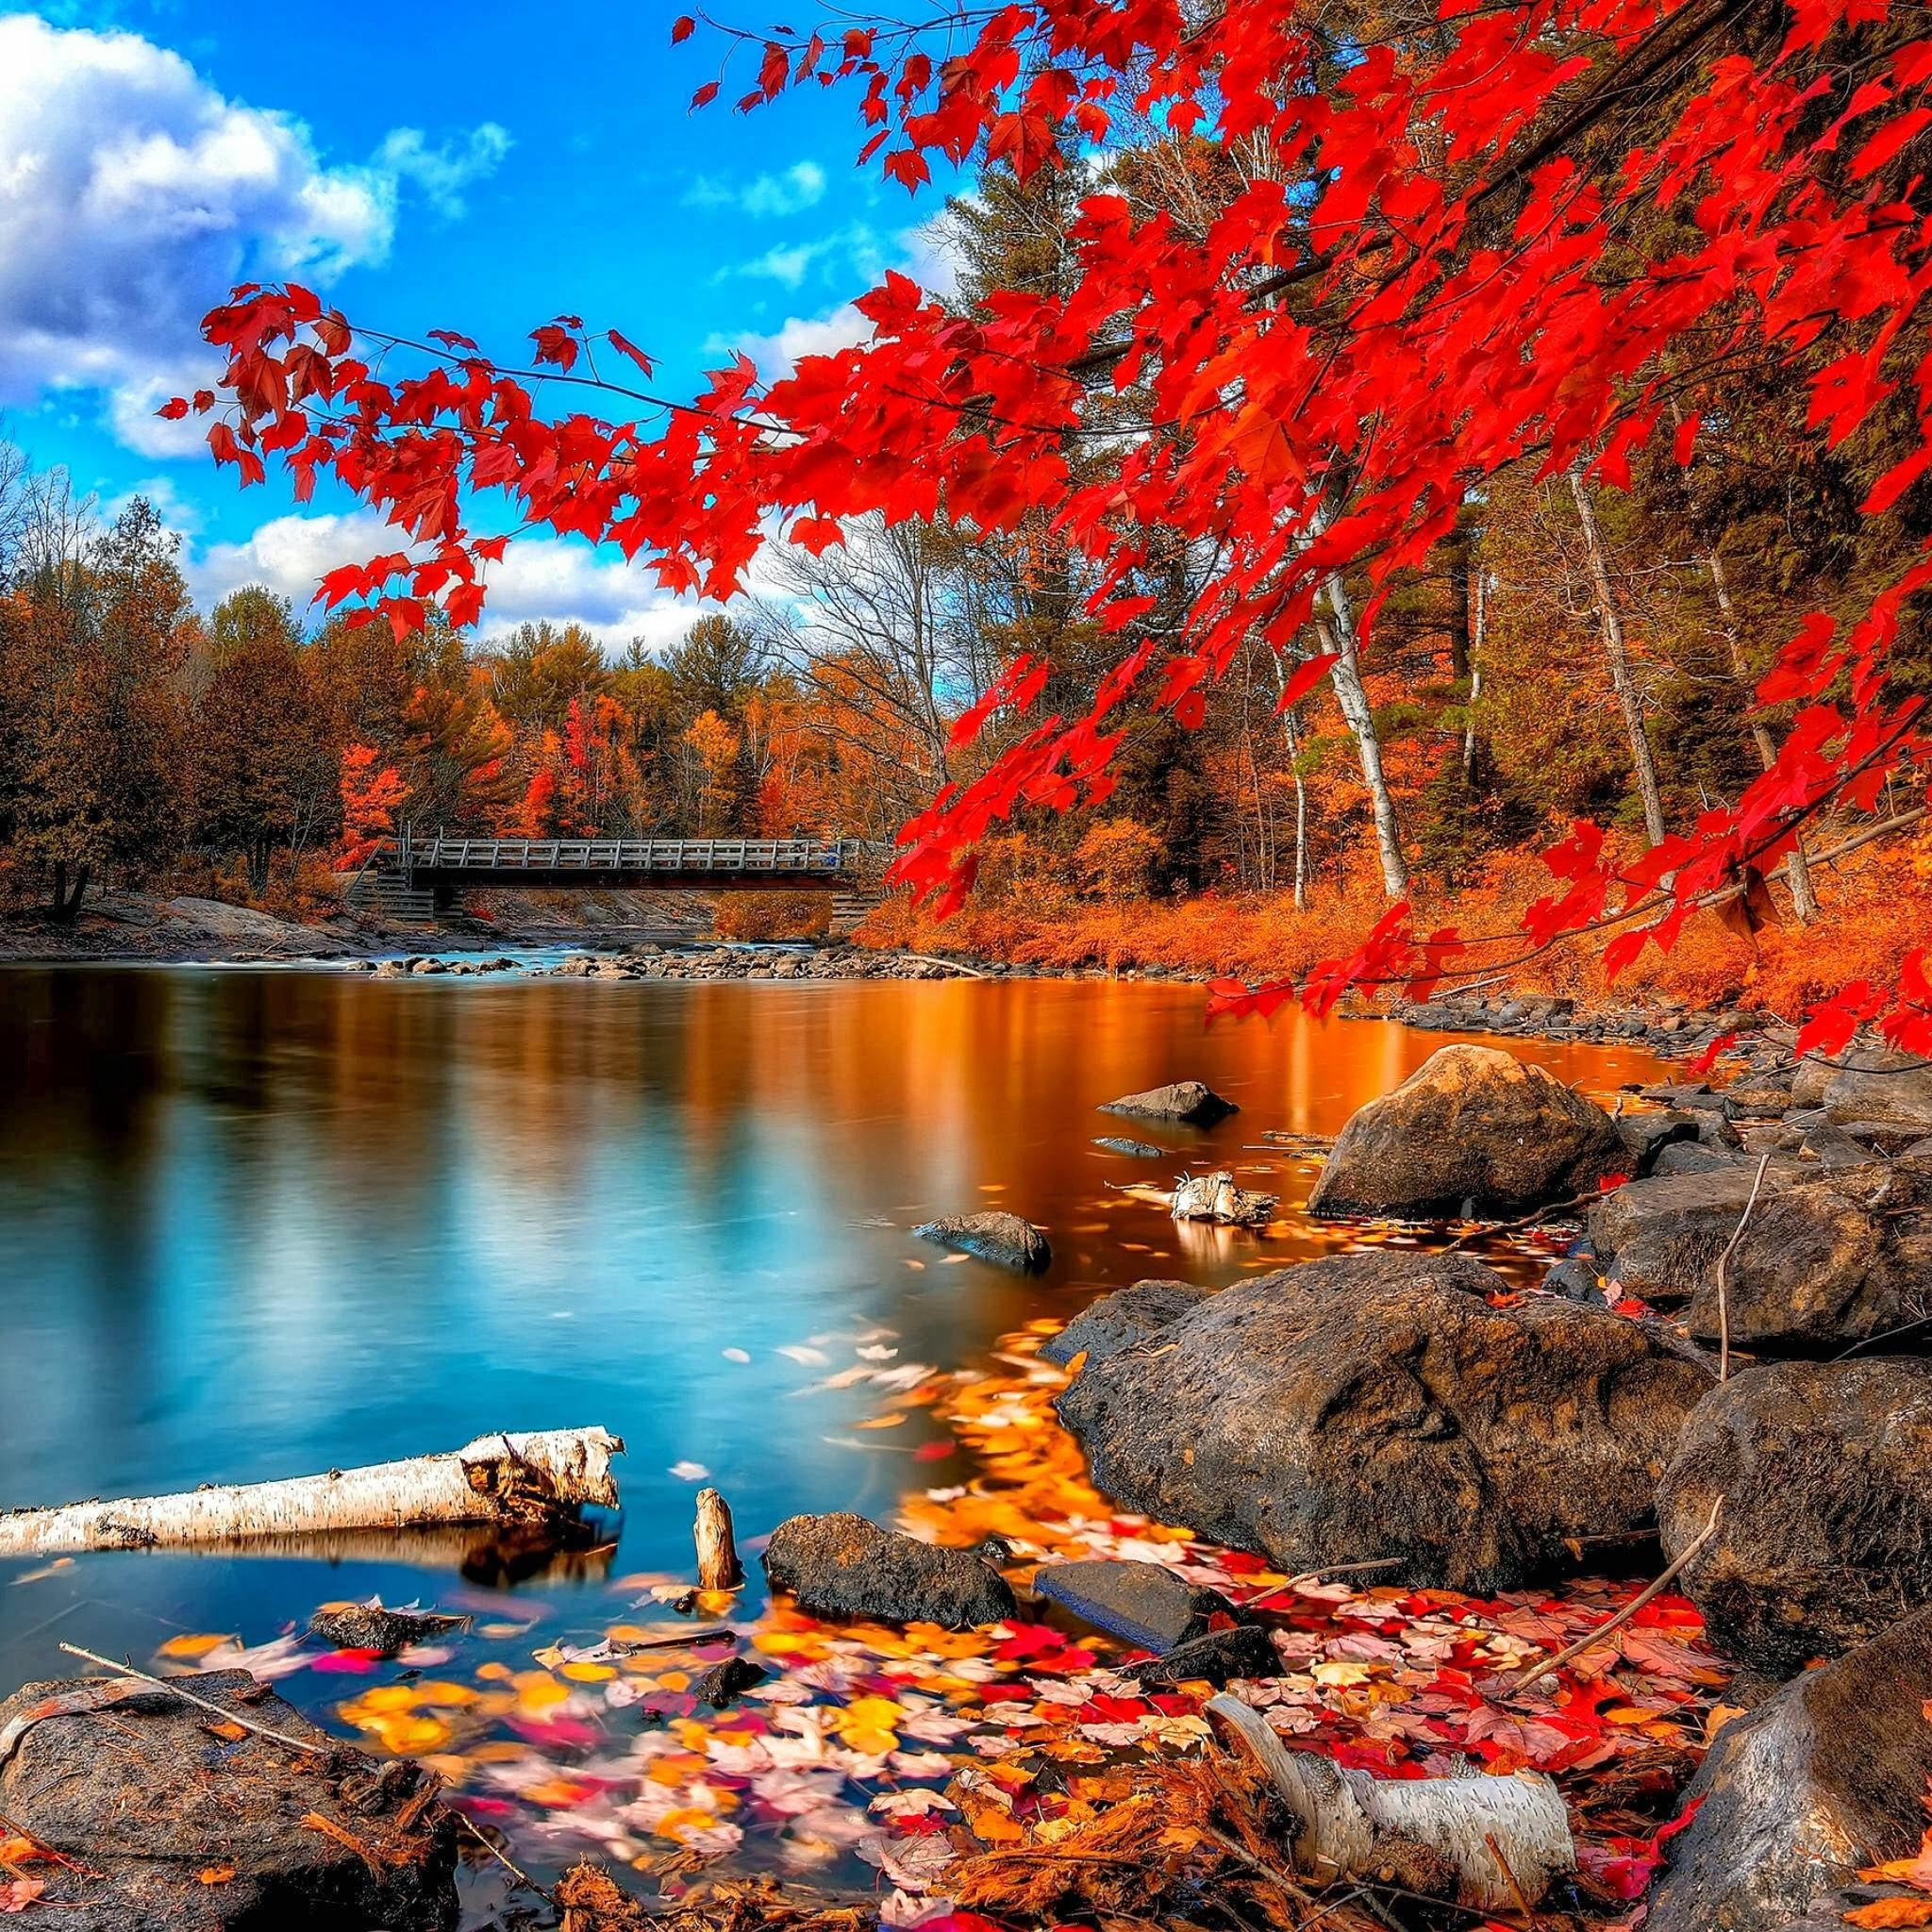 Nature Autumn Red Leaf Calm Lake Landscape iPad Air wallpaper